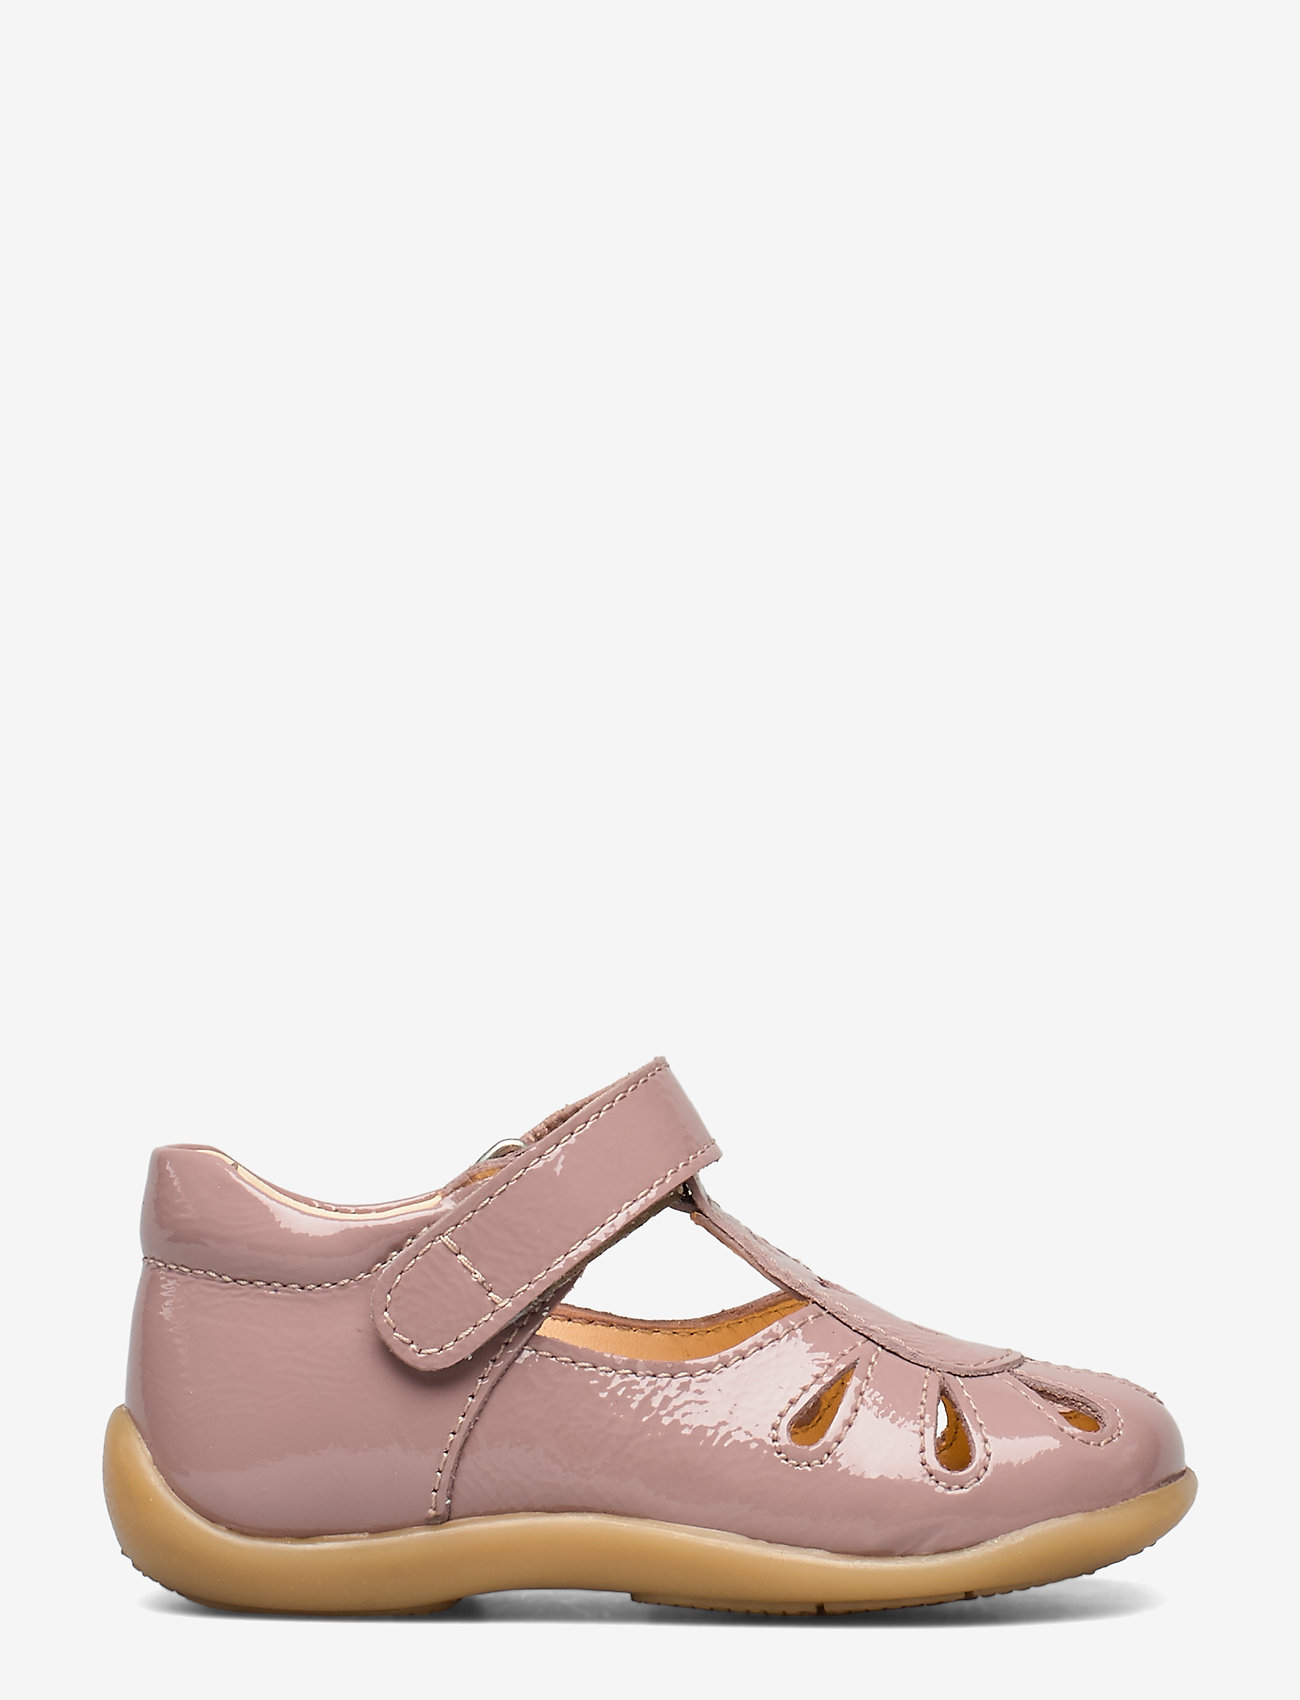 ANGULUS - Sandals - flat - closed toe -  - lauflernschuhe - 1387 rose - 1